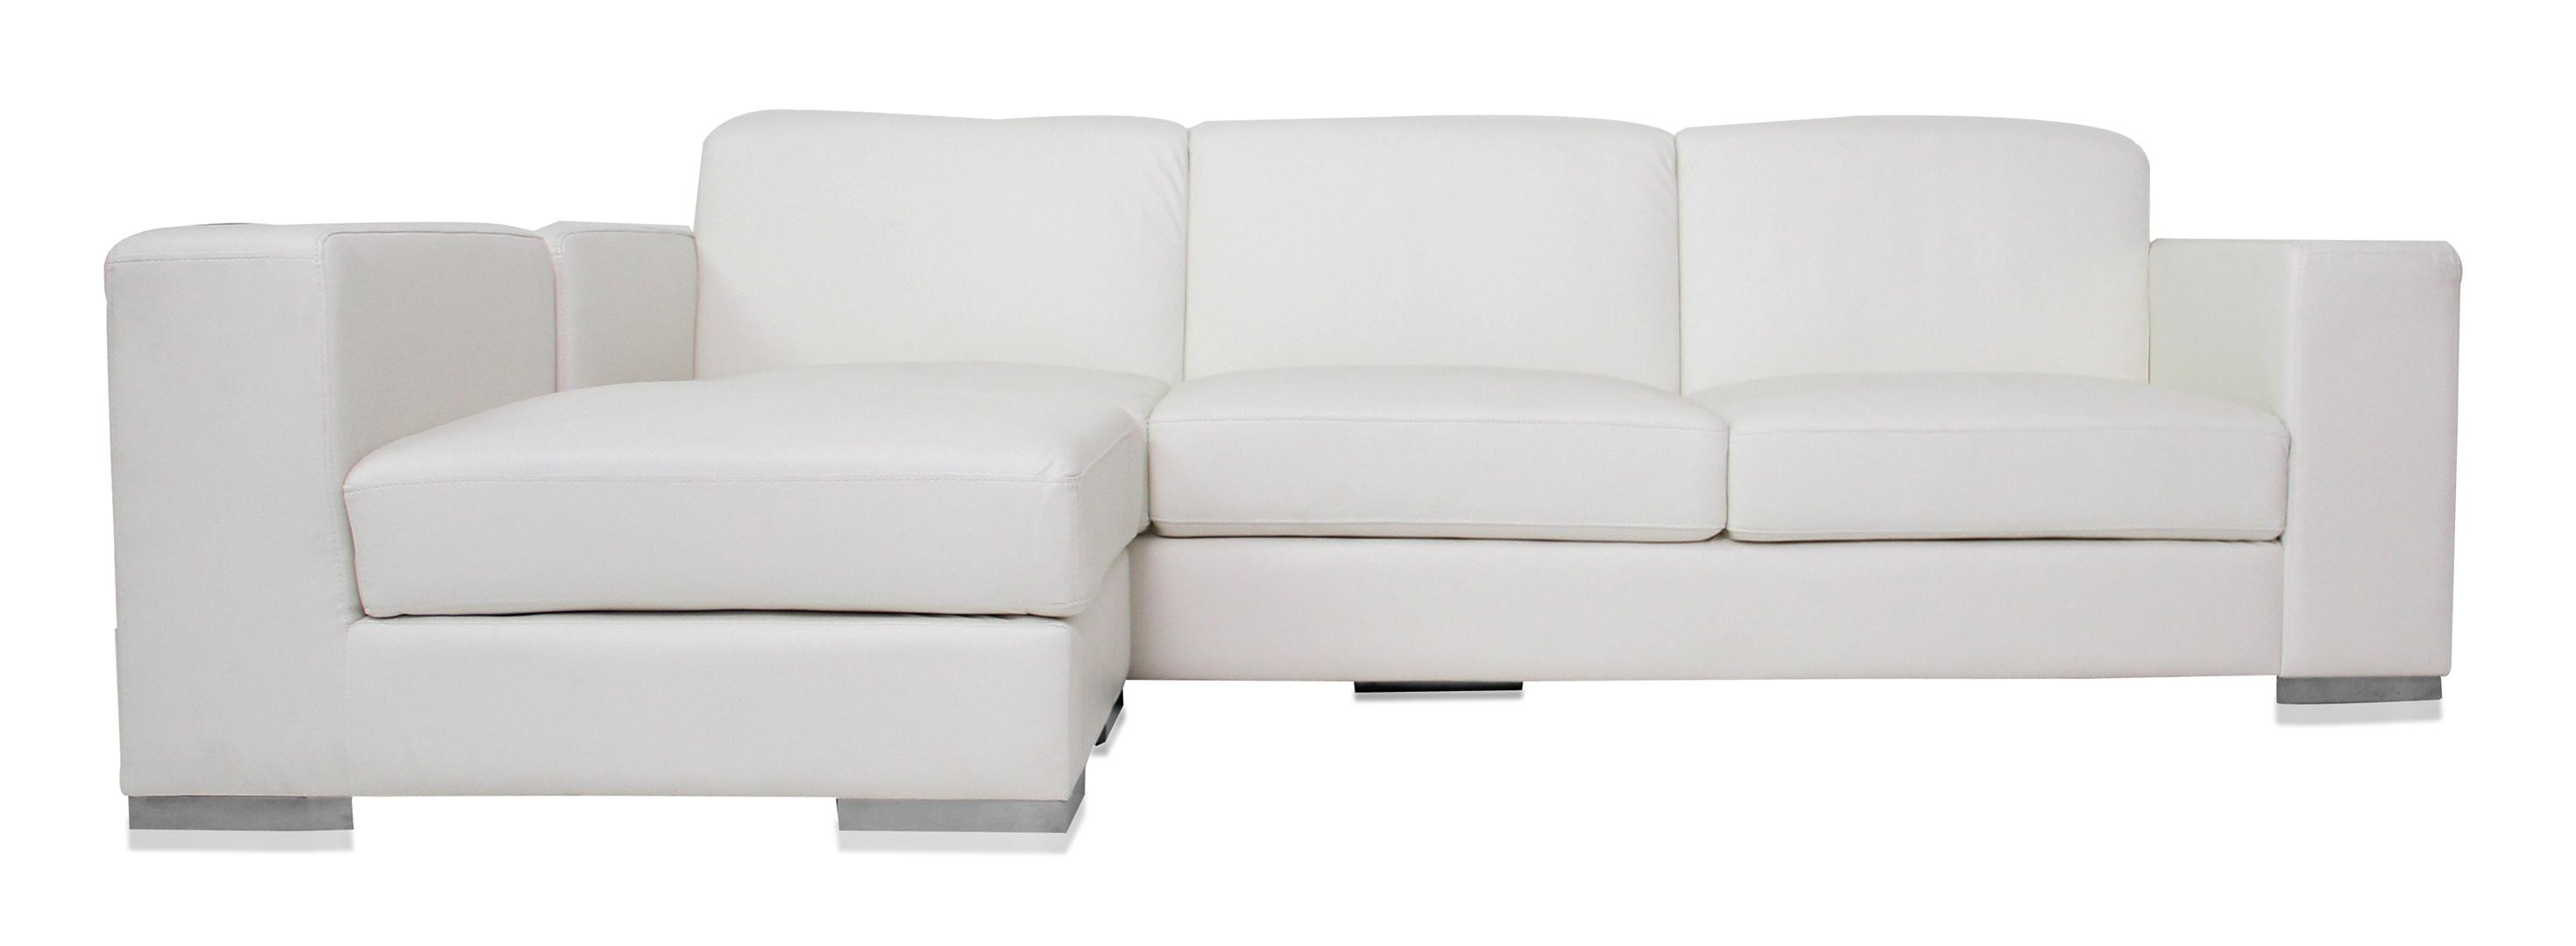 Modern White Sofa Regarding White Sofa Chairs (Image 9 of 20)